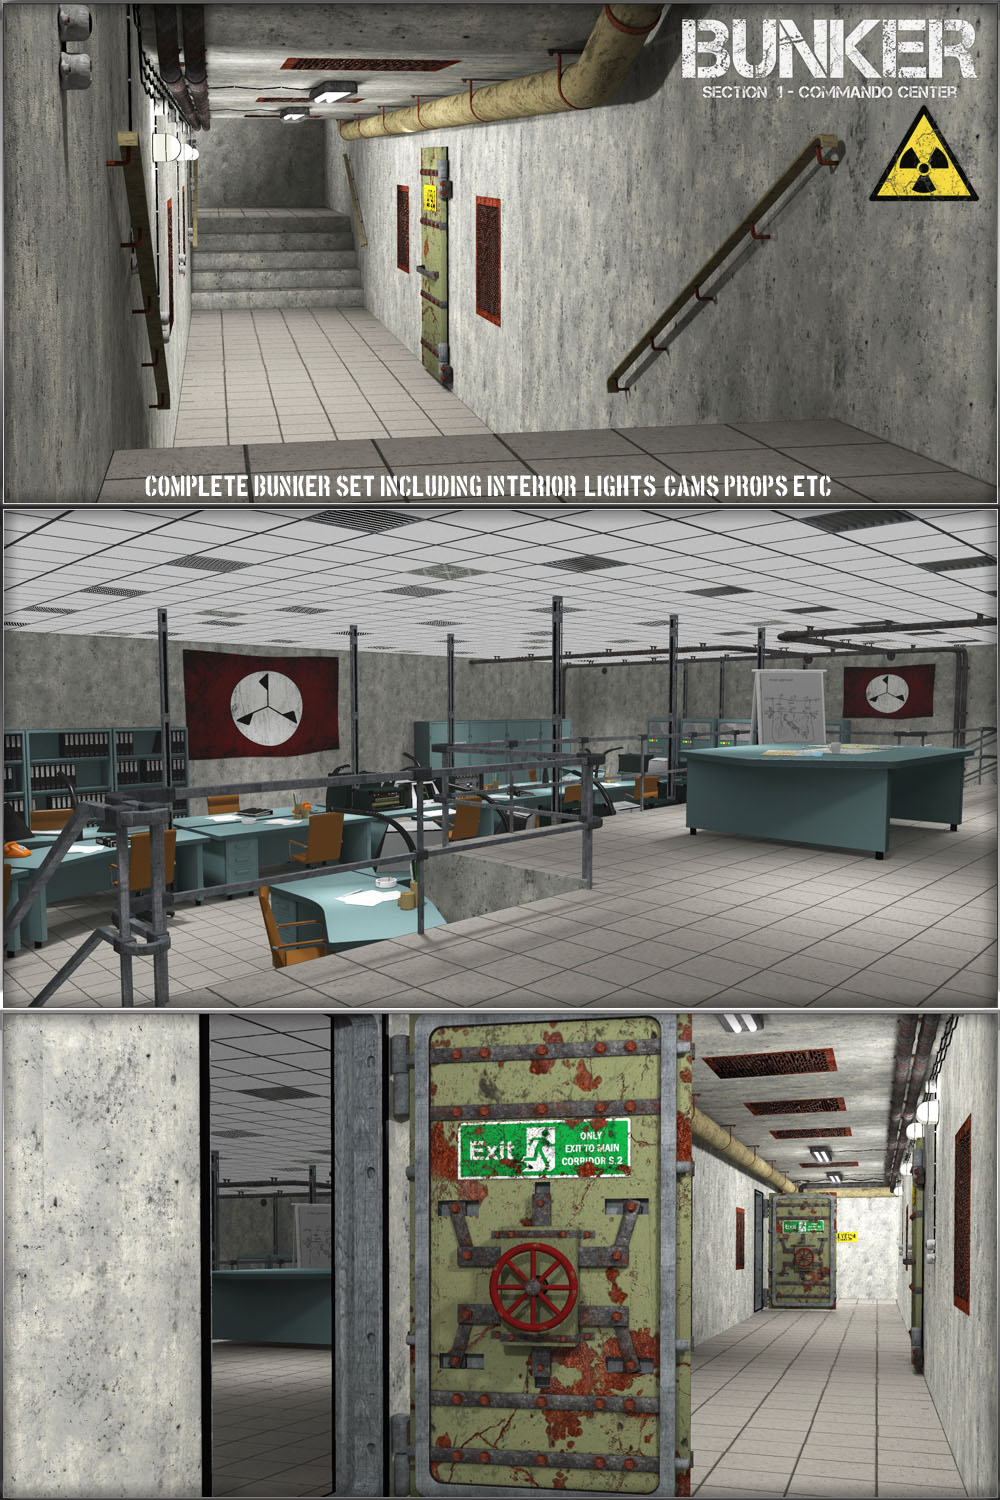 Bunker: S1 - Commando Center